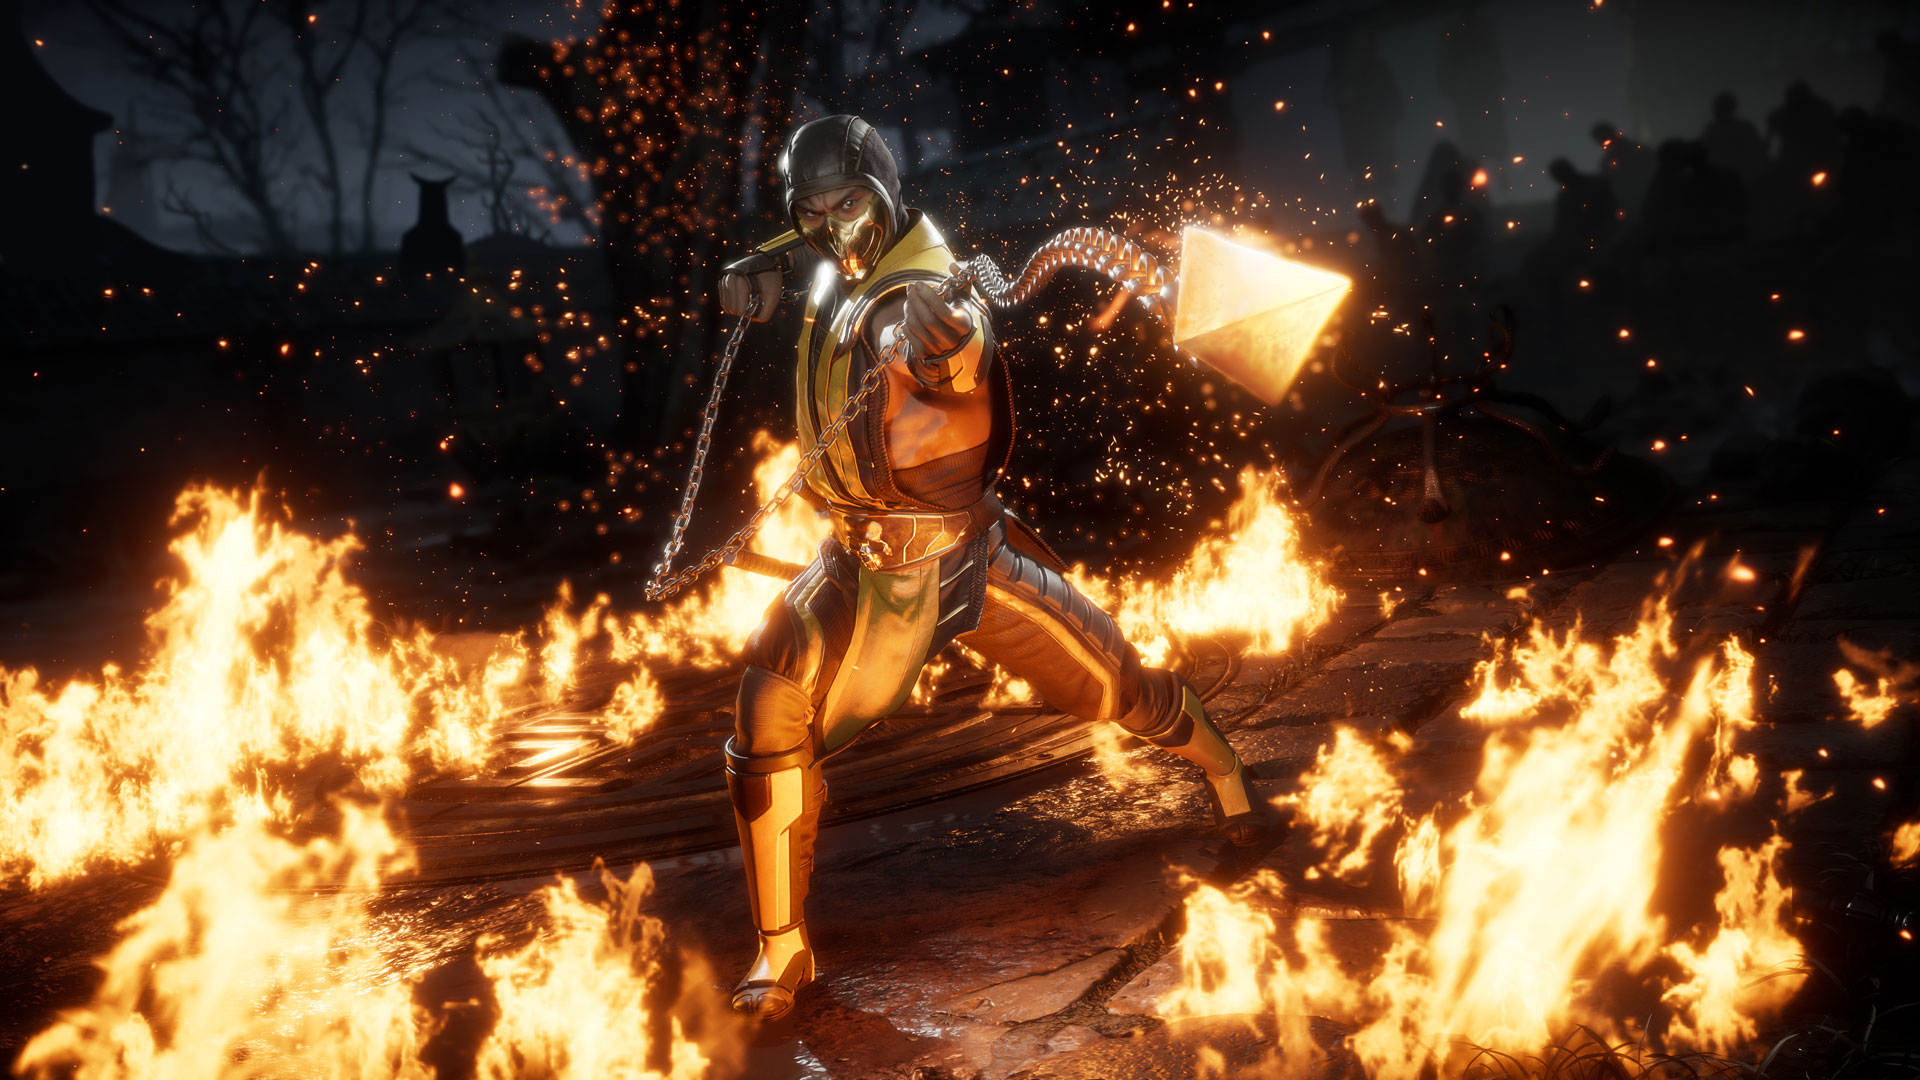 Mortal Kombat 11 Crack Download